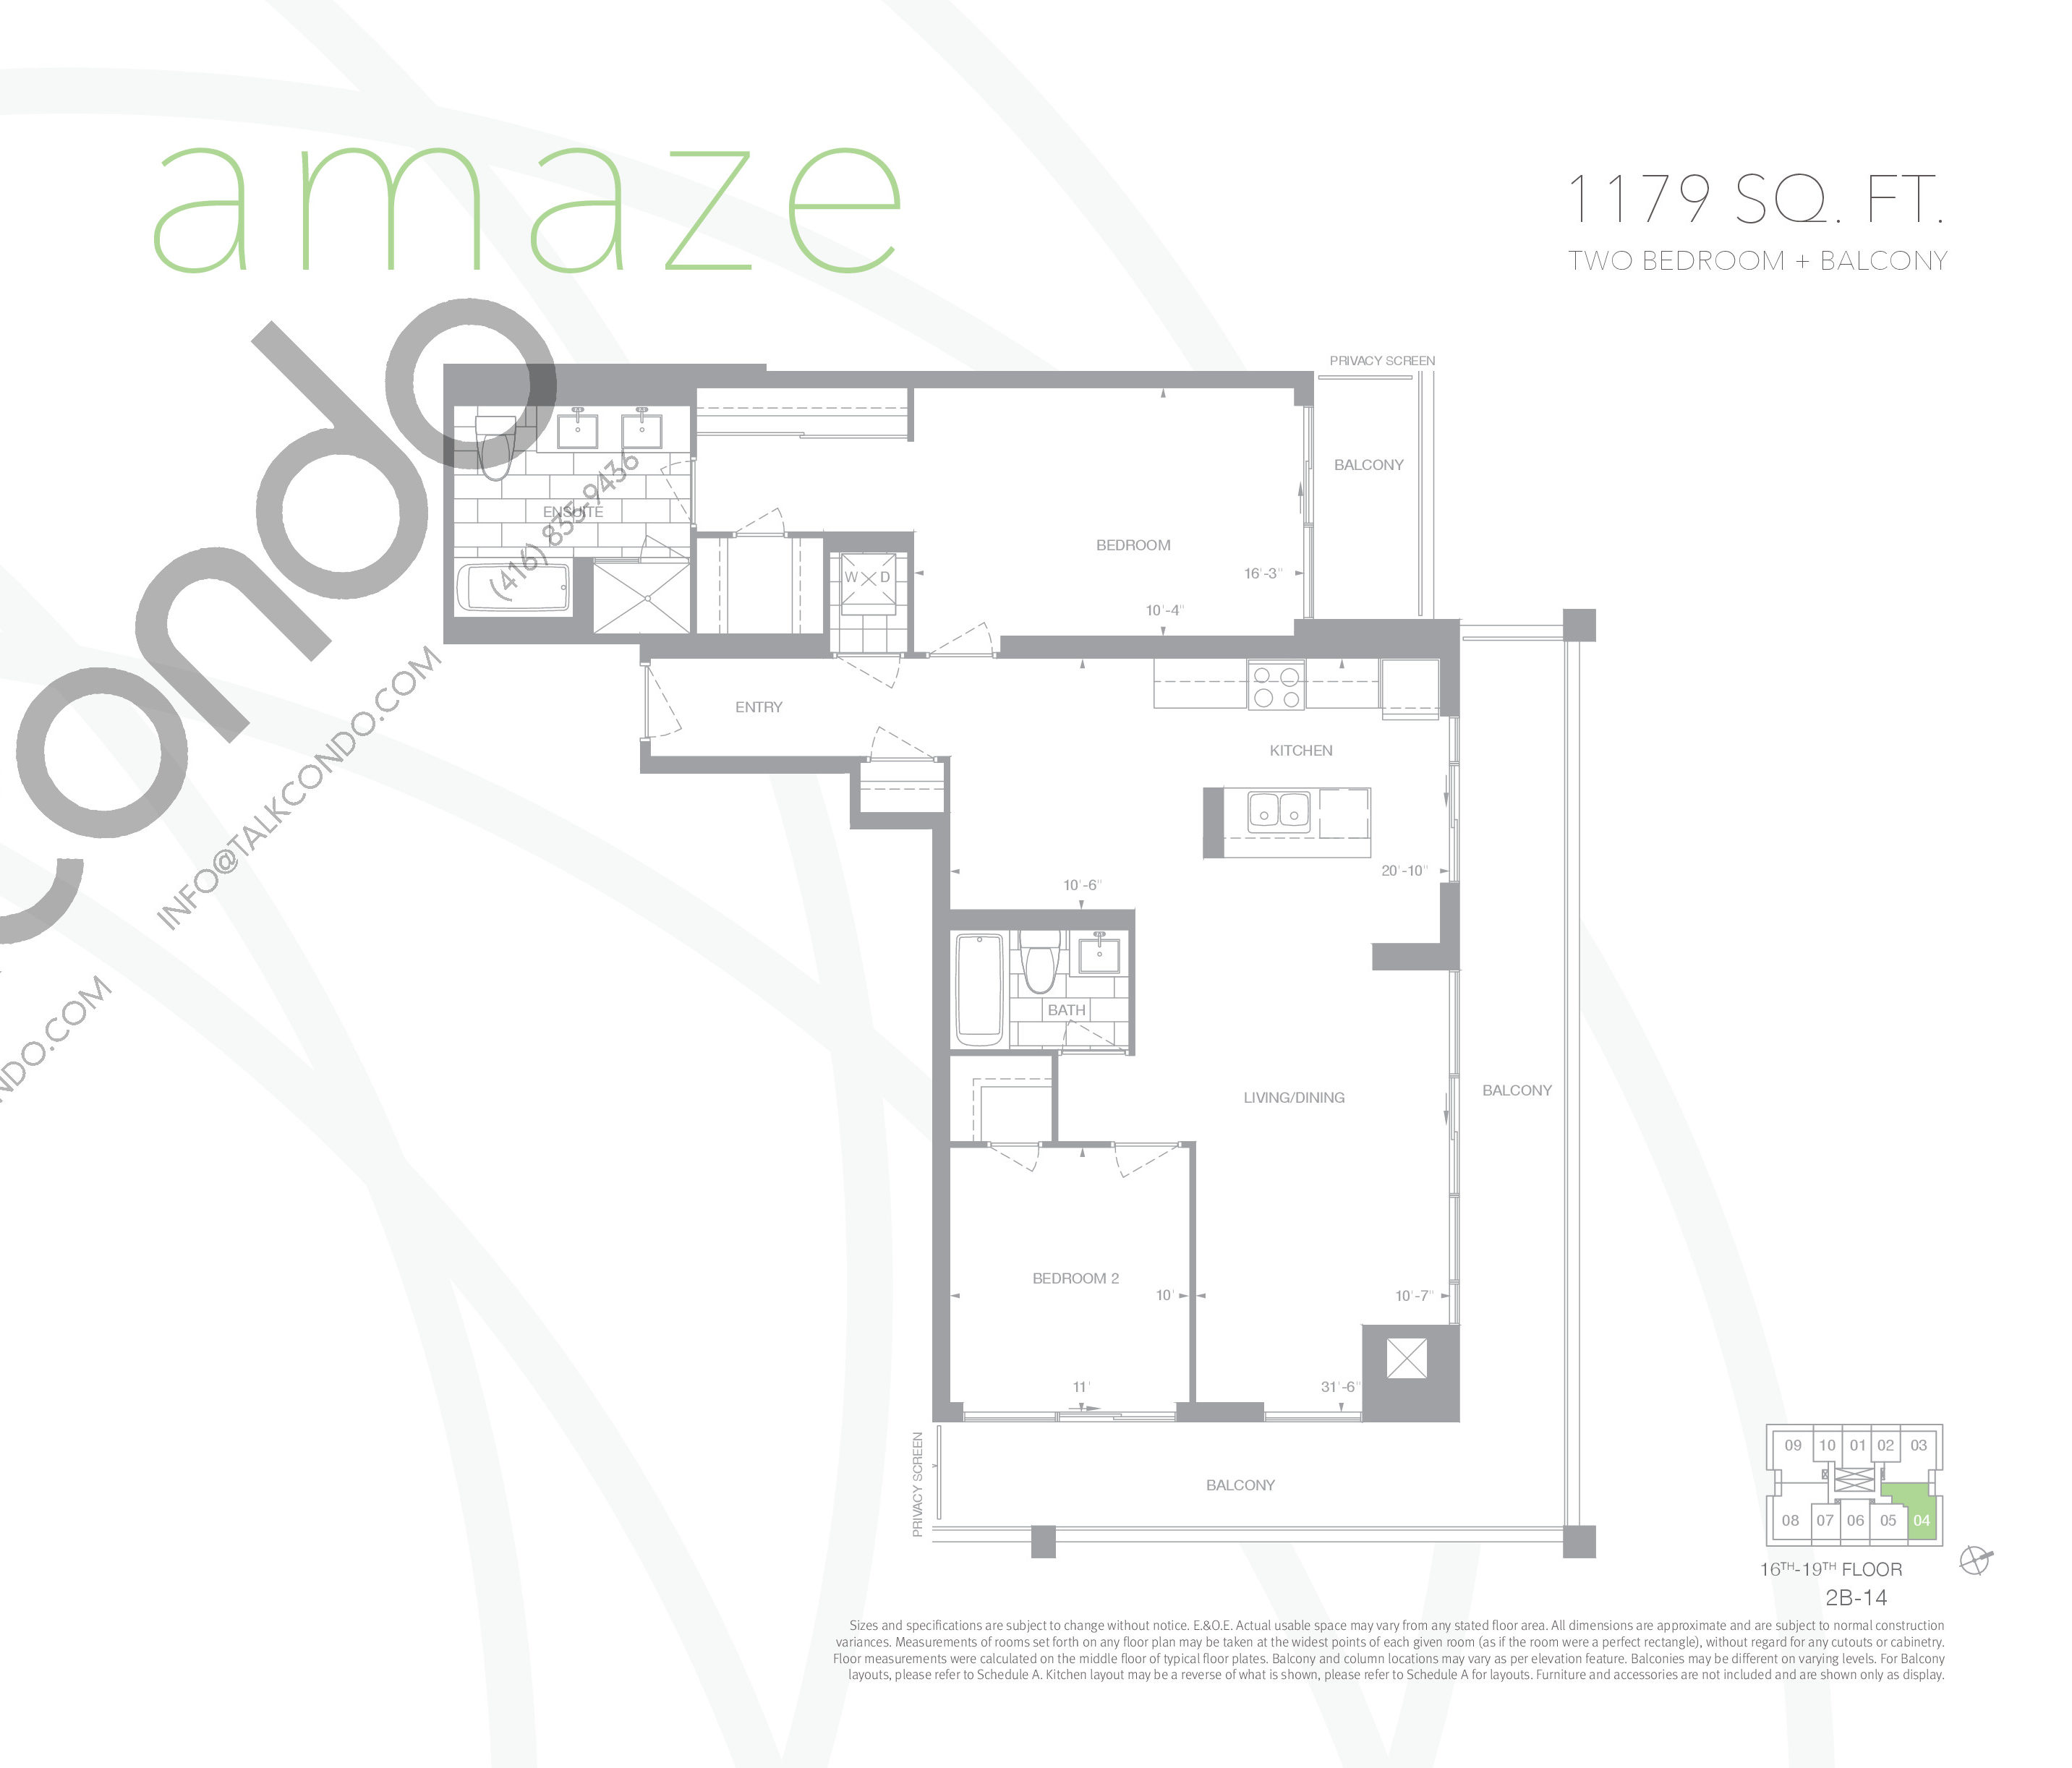 Amaze Floor Plan at Senses Condominiums - 1179 sq.ft